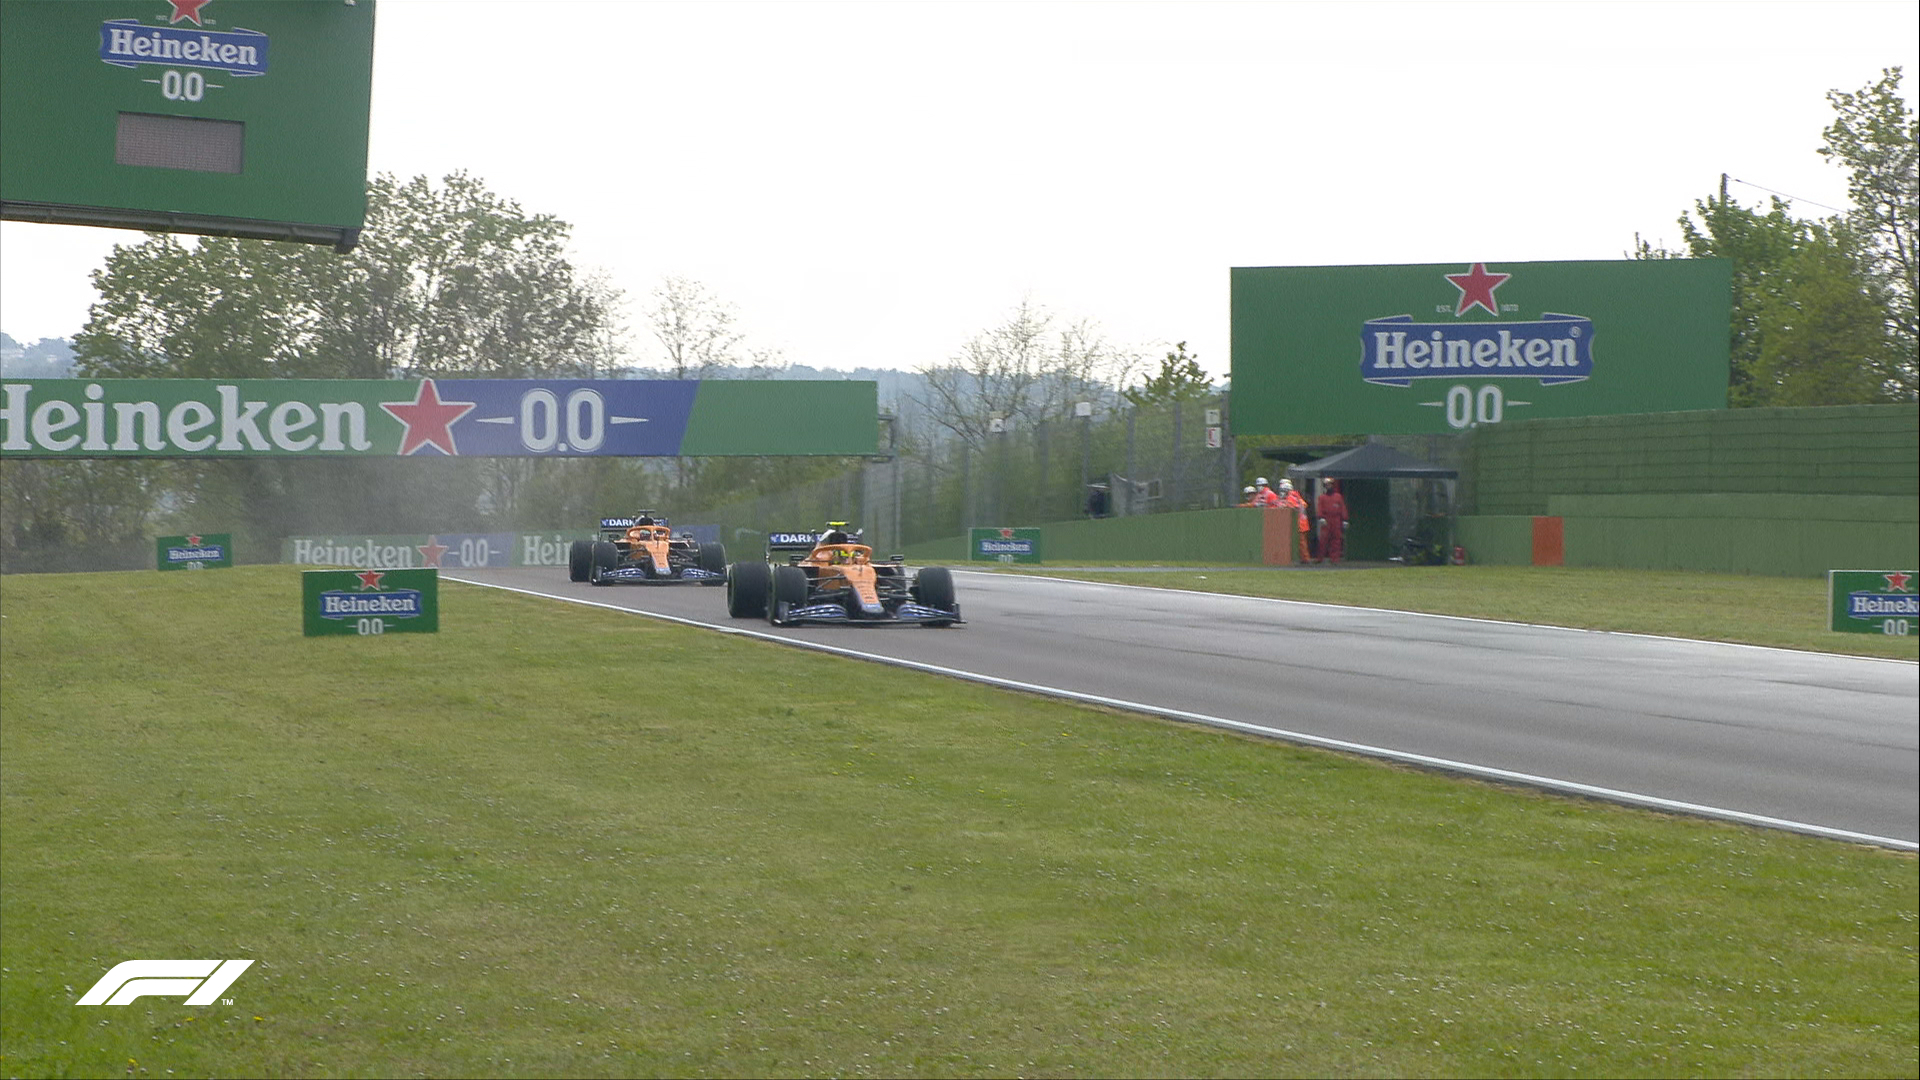 Lando Norris takes the lead from his McLaren F1 teammate Daniel Ricciardo at the Emilia Romagna Grand Prix at the Autodrome Enzo e Dino Ferrari, Imola on Sunday, April 18, 2021.